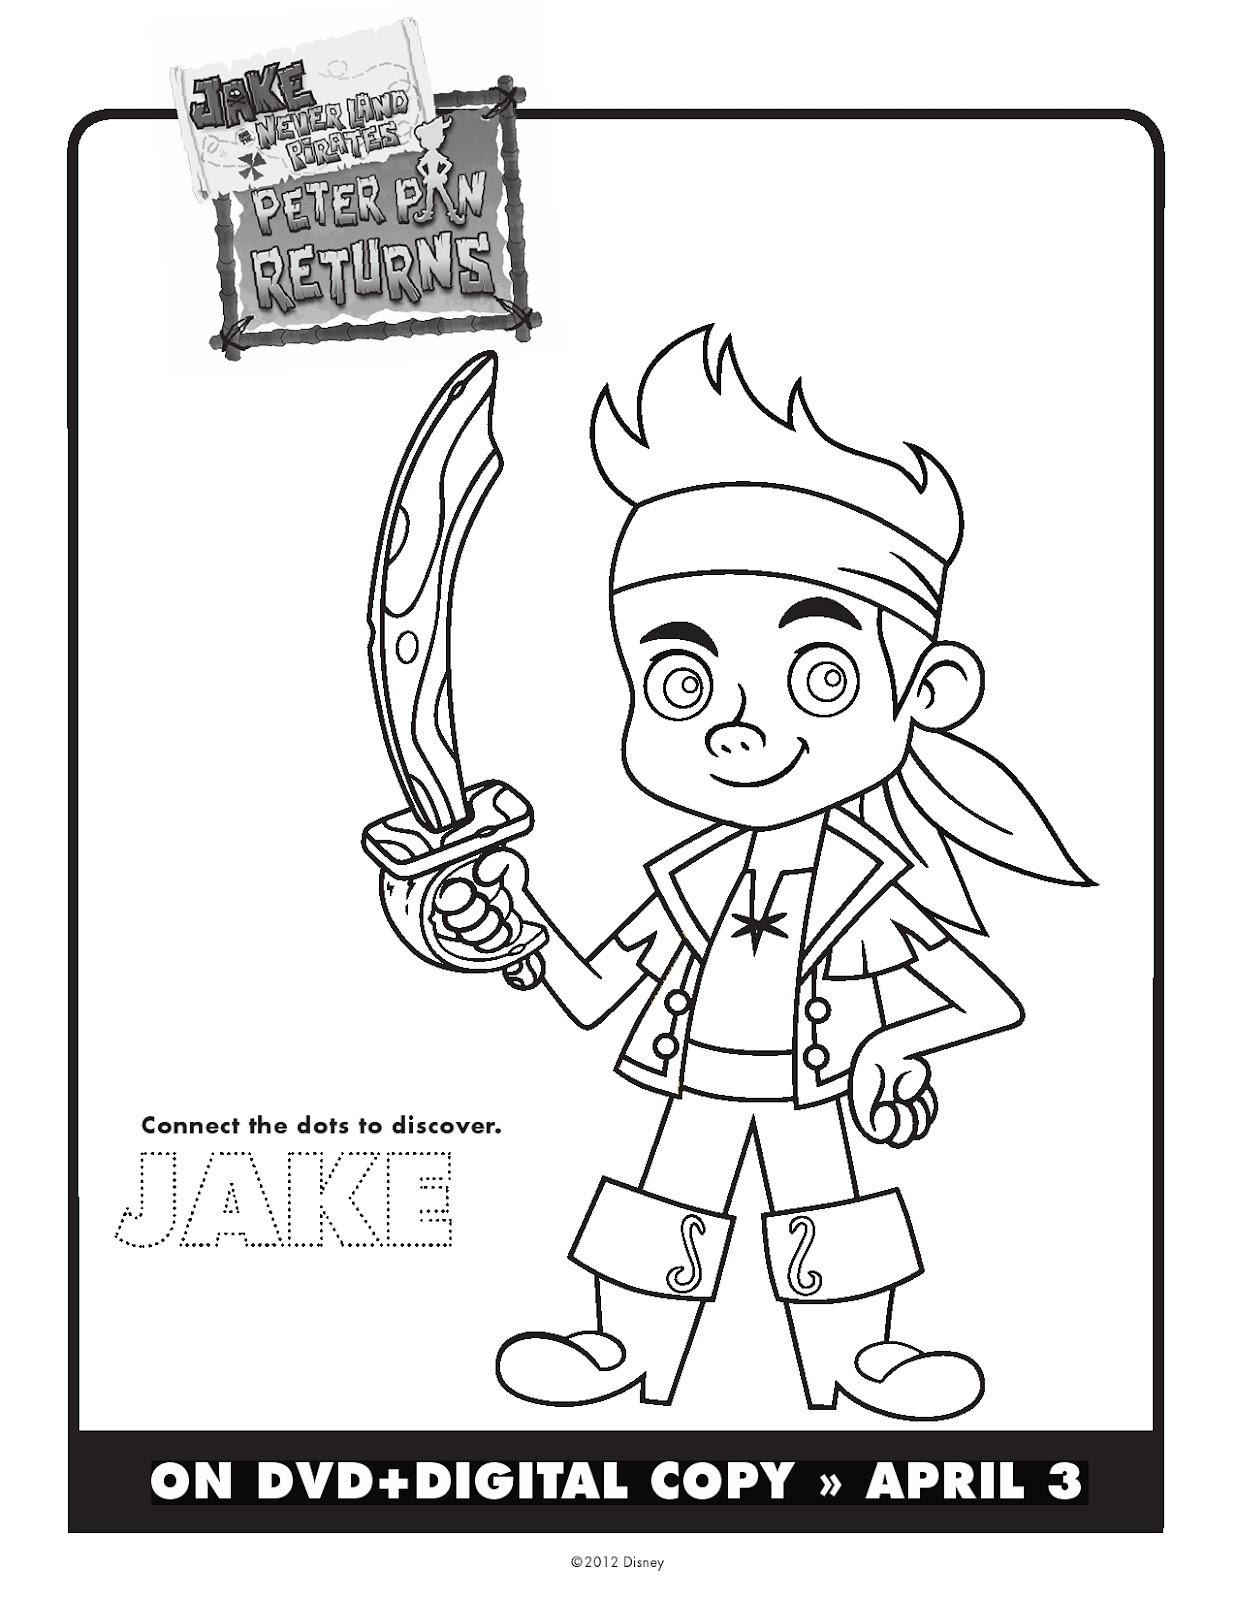 Coloring pages for jake and the neverland pirates - Jack And The Neverland Coloring Pages Printable Jake The Pirate